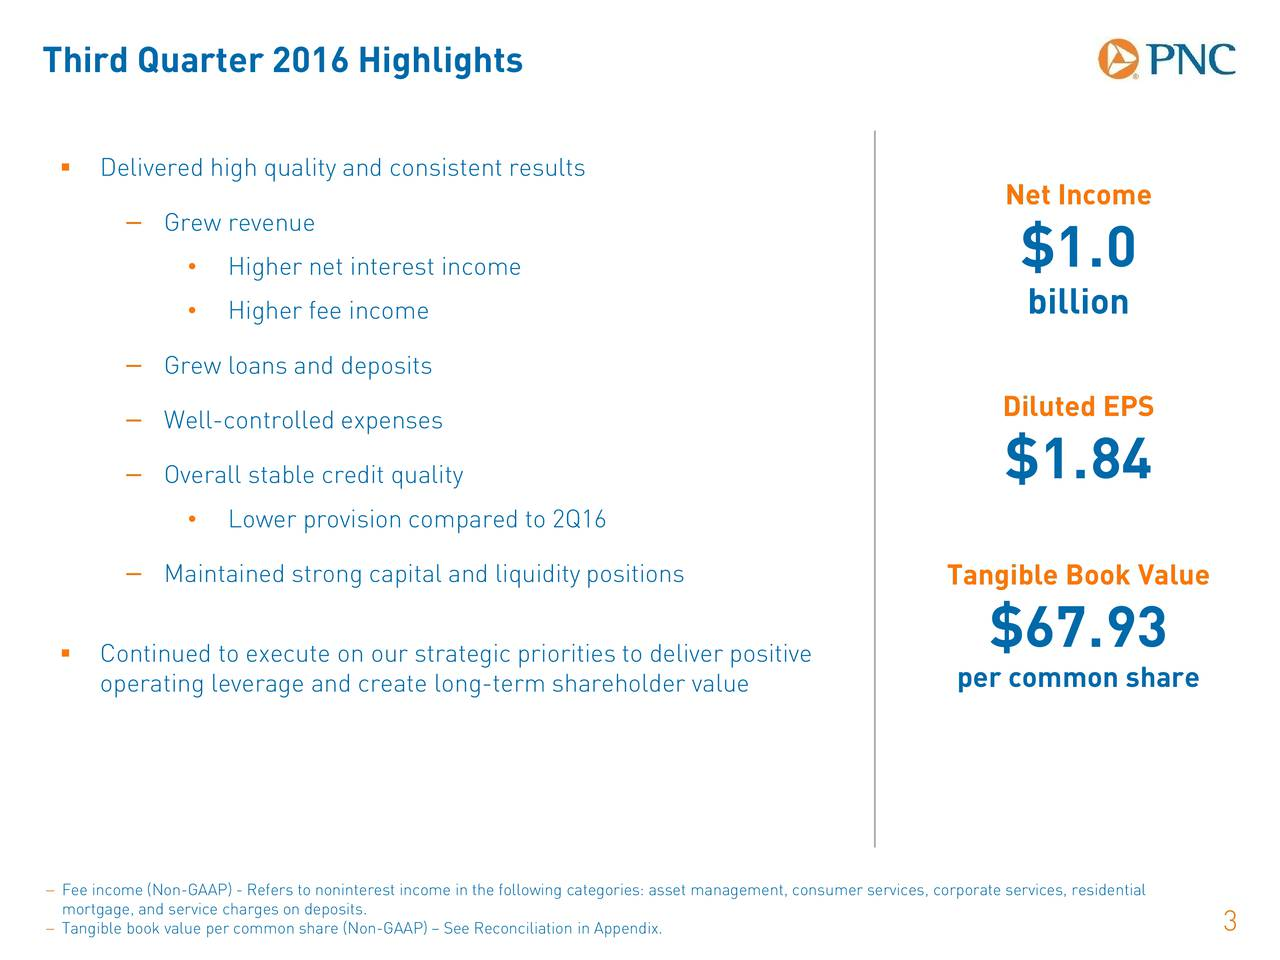 Delivered high quality and consistent results Net Income Grew revenue Higher net interest income $1.0 Higher fee income billion Grew loans and deposits Diluted EPS Well-controlled expenses $1.84 Overall stable credit quality Lower provision compared to 2Q16 Maintained strong capital and liquidity positions Tangible Book Value $67.93 Continued to execute on our strategic priorities todeliver positive operating leverage and create long-term shareholder value per common share mortgage, and service charges on deposits.est income in the following categories: asset management, consumer services, corporate services, residential Tangible book value per commonshare (Non-GAAP)  See Reconciliation in Appendix. 3